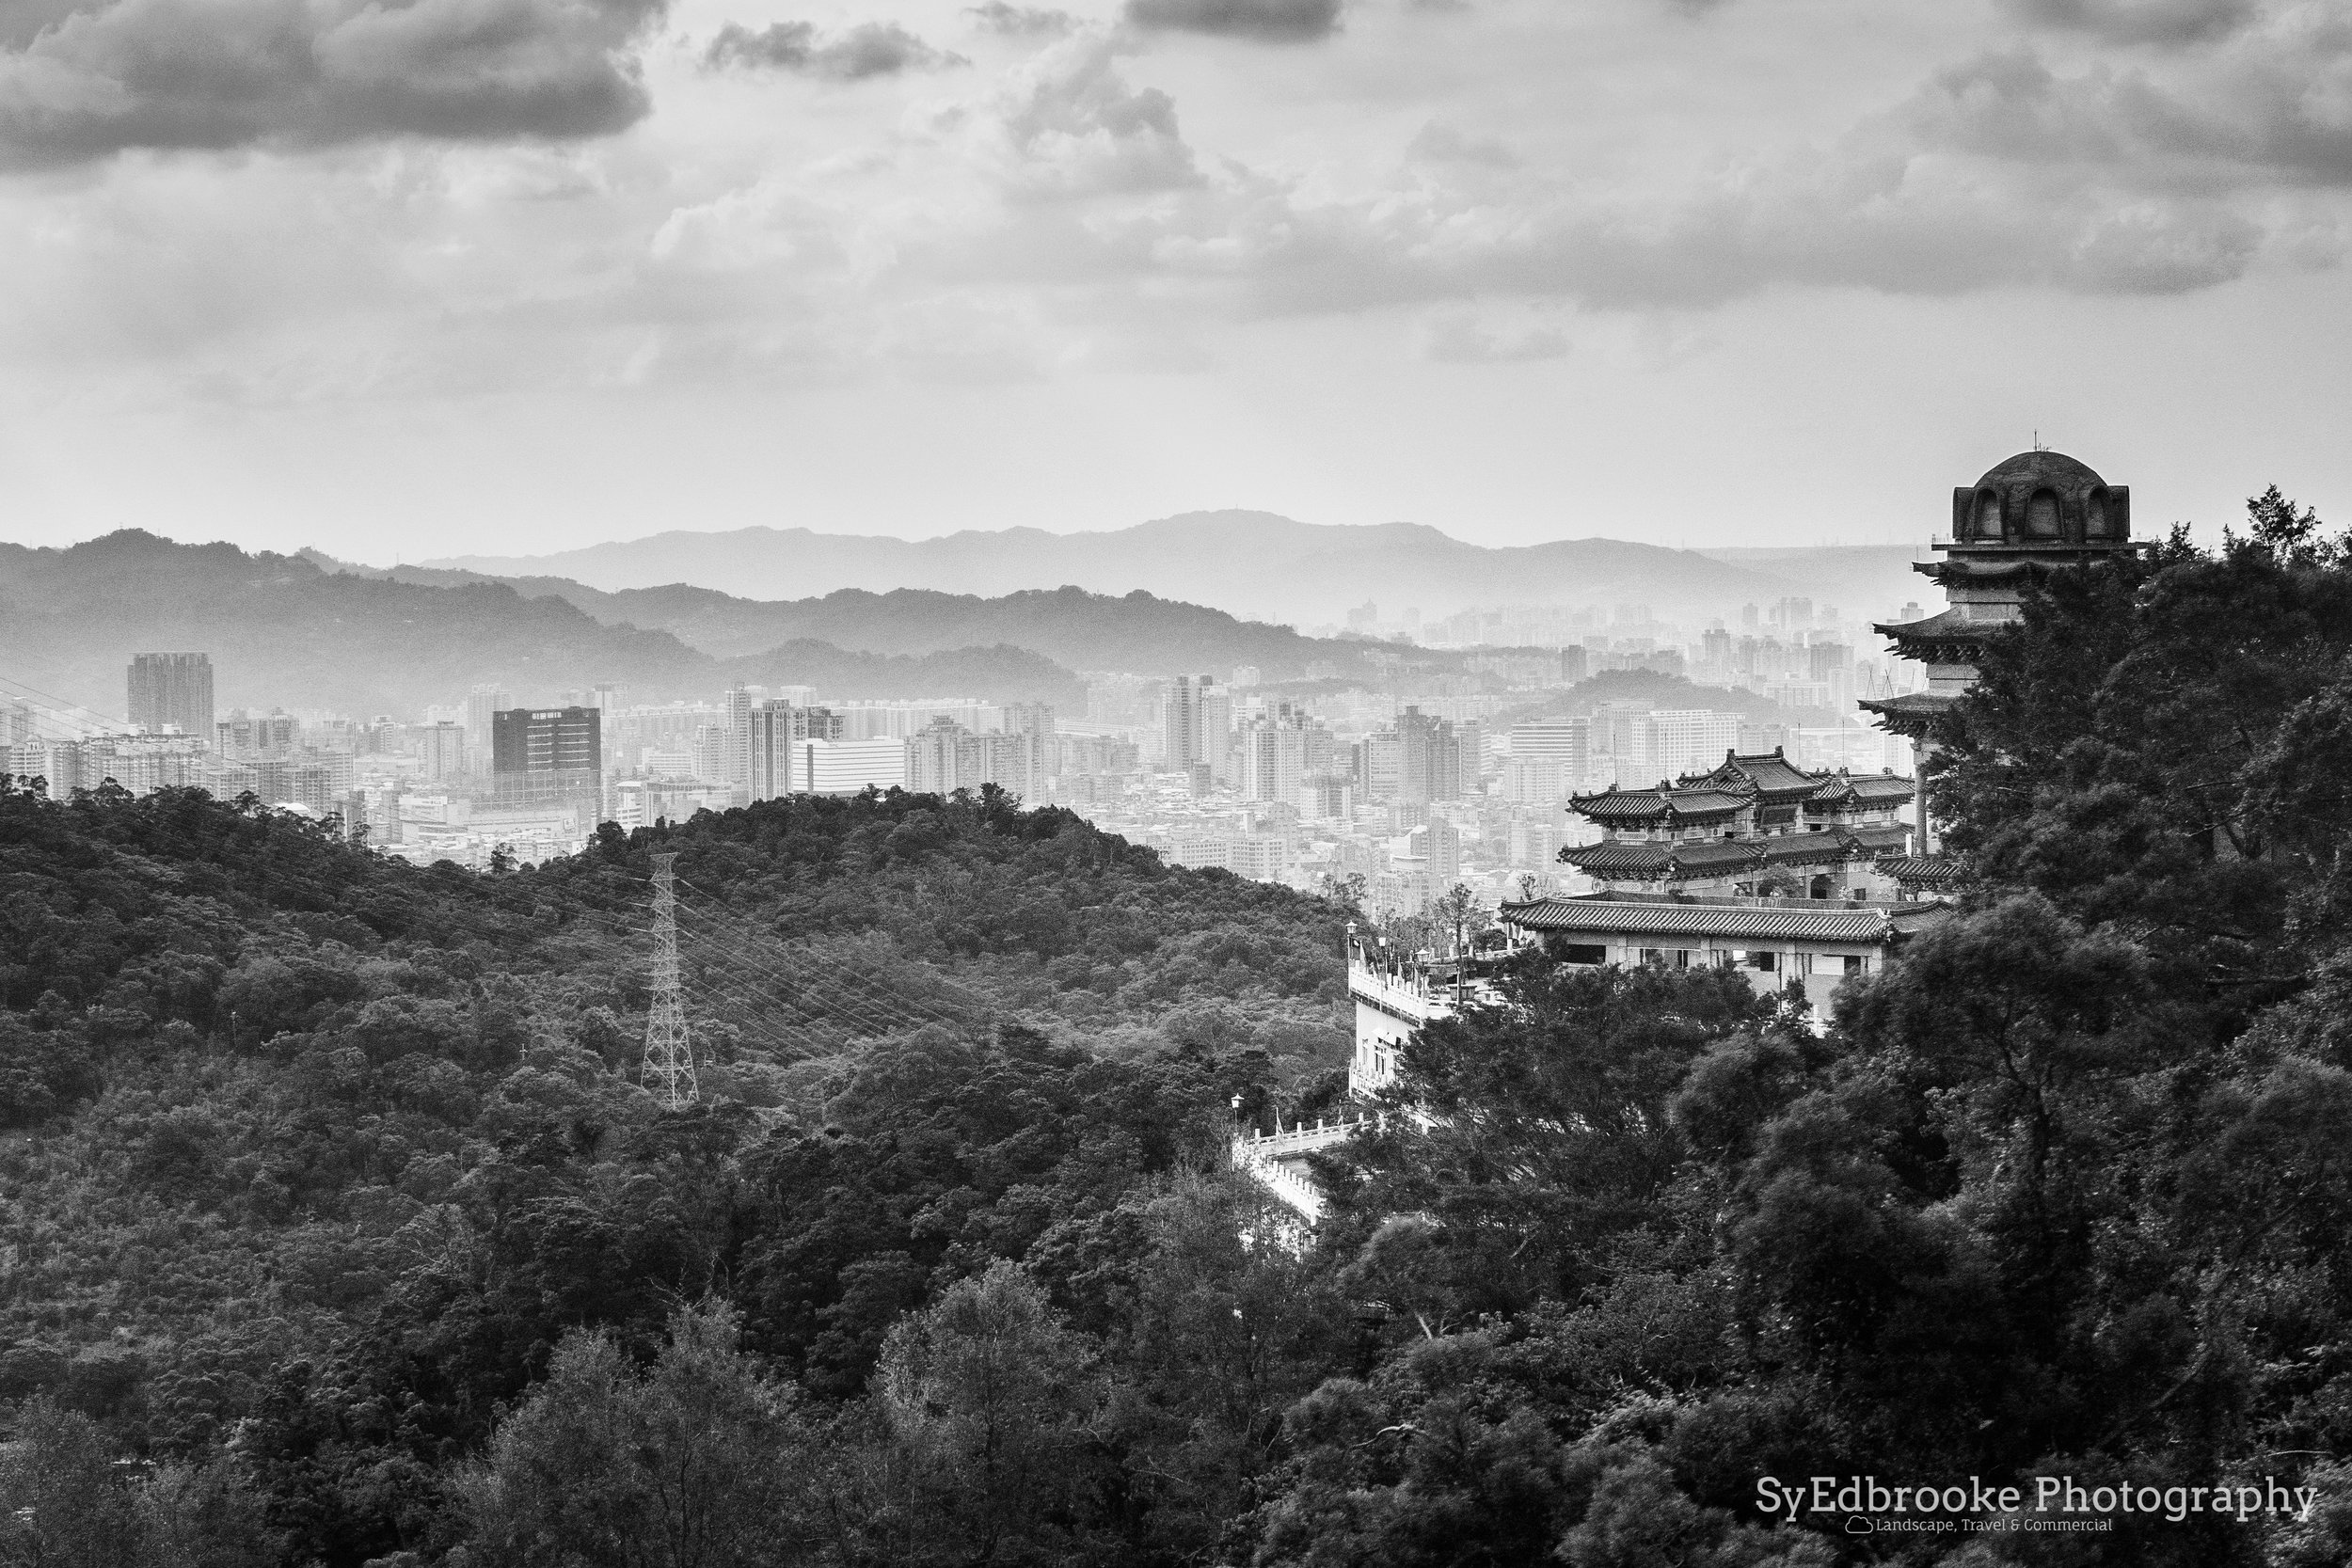 A view of the temple station on the way to Maokong. f11, ISO 800, 1/80, 80mm